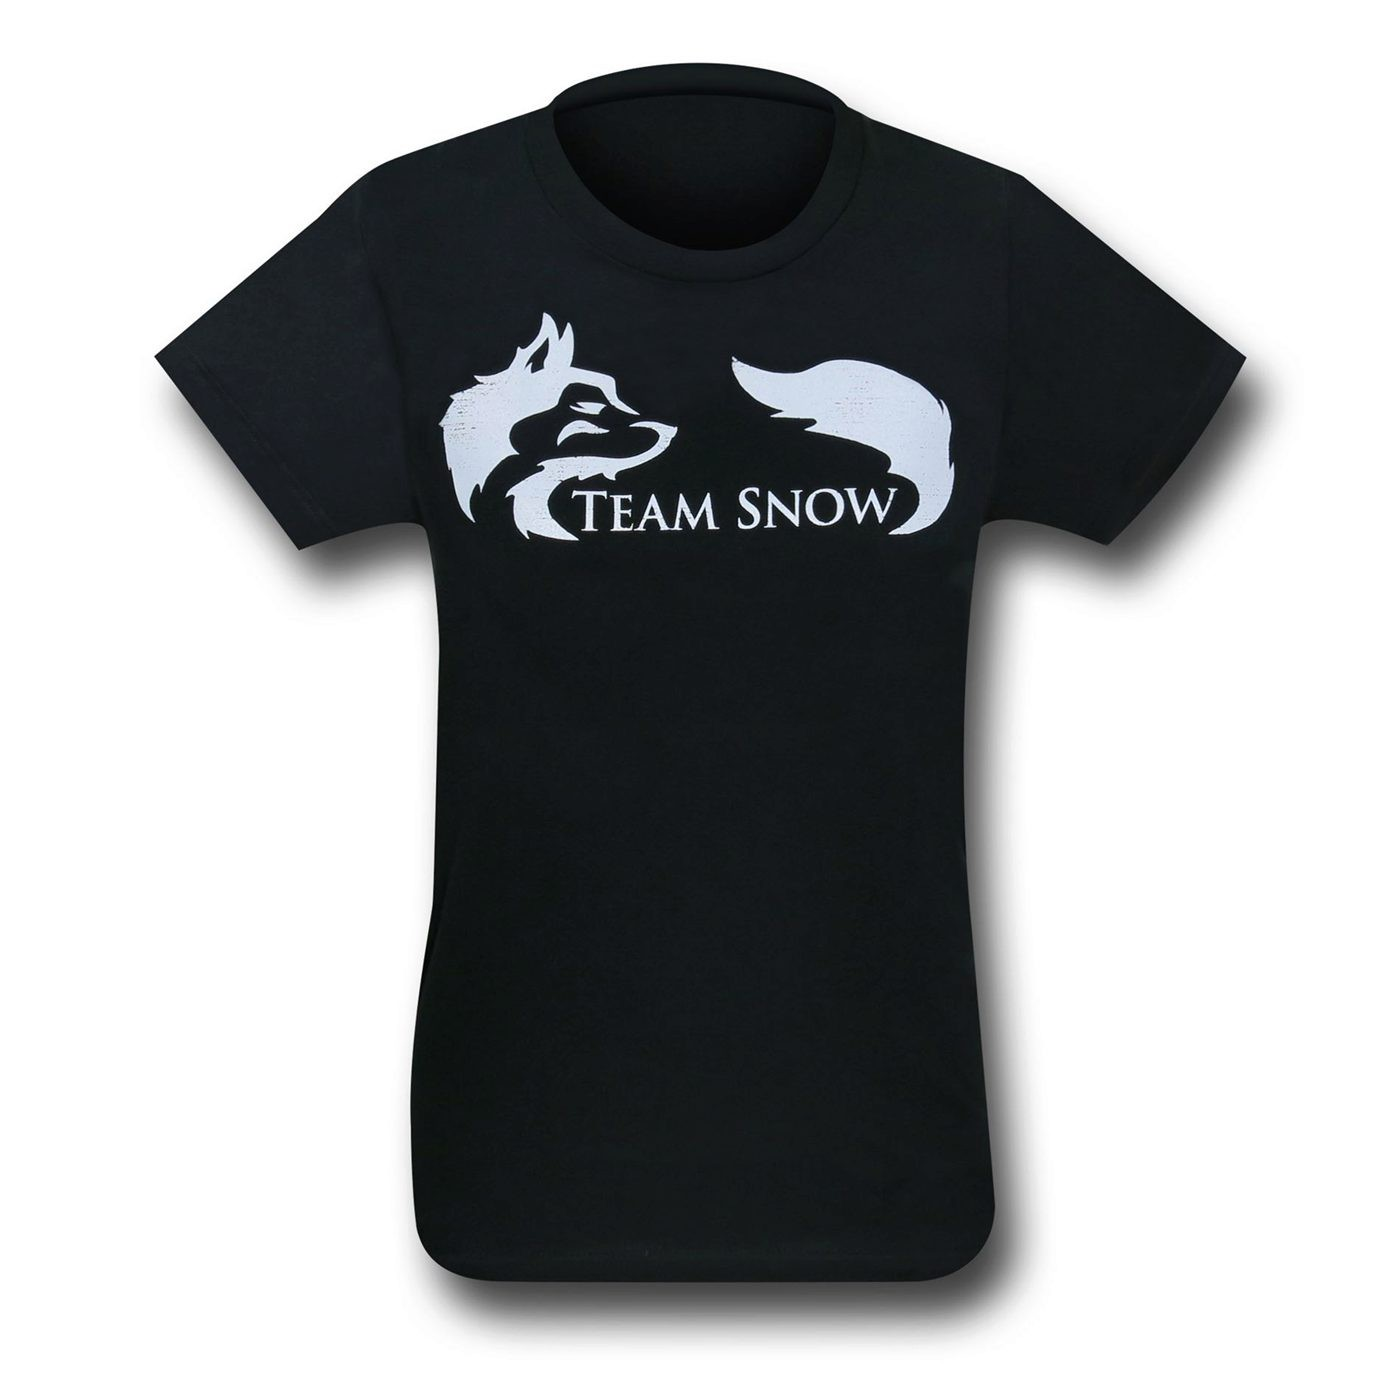 Team Snow on Black Women's T-Shirt